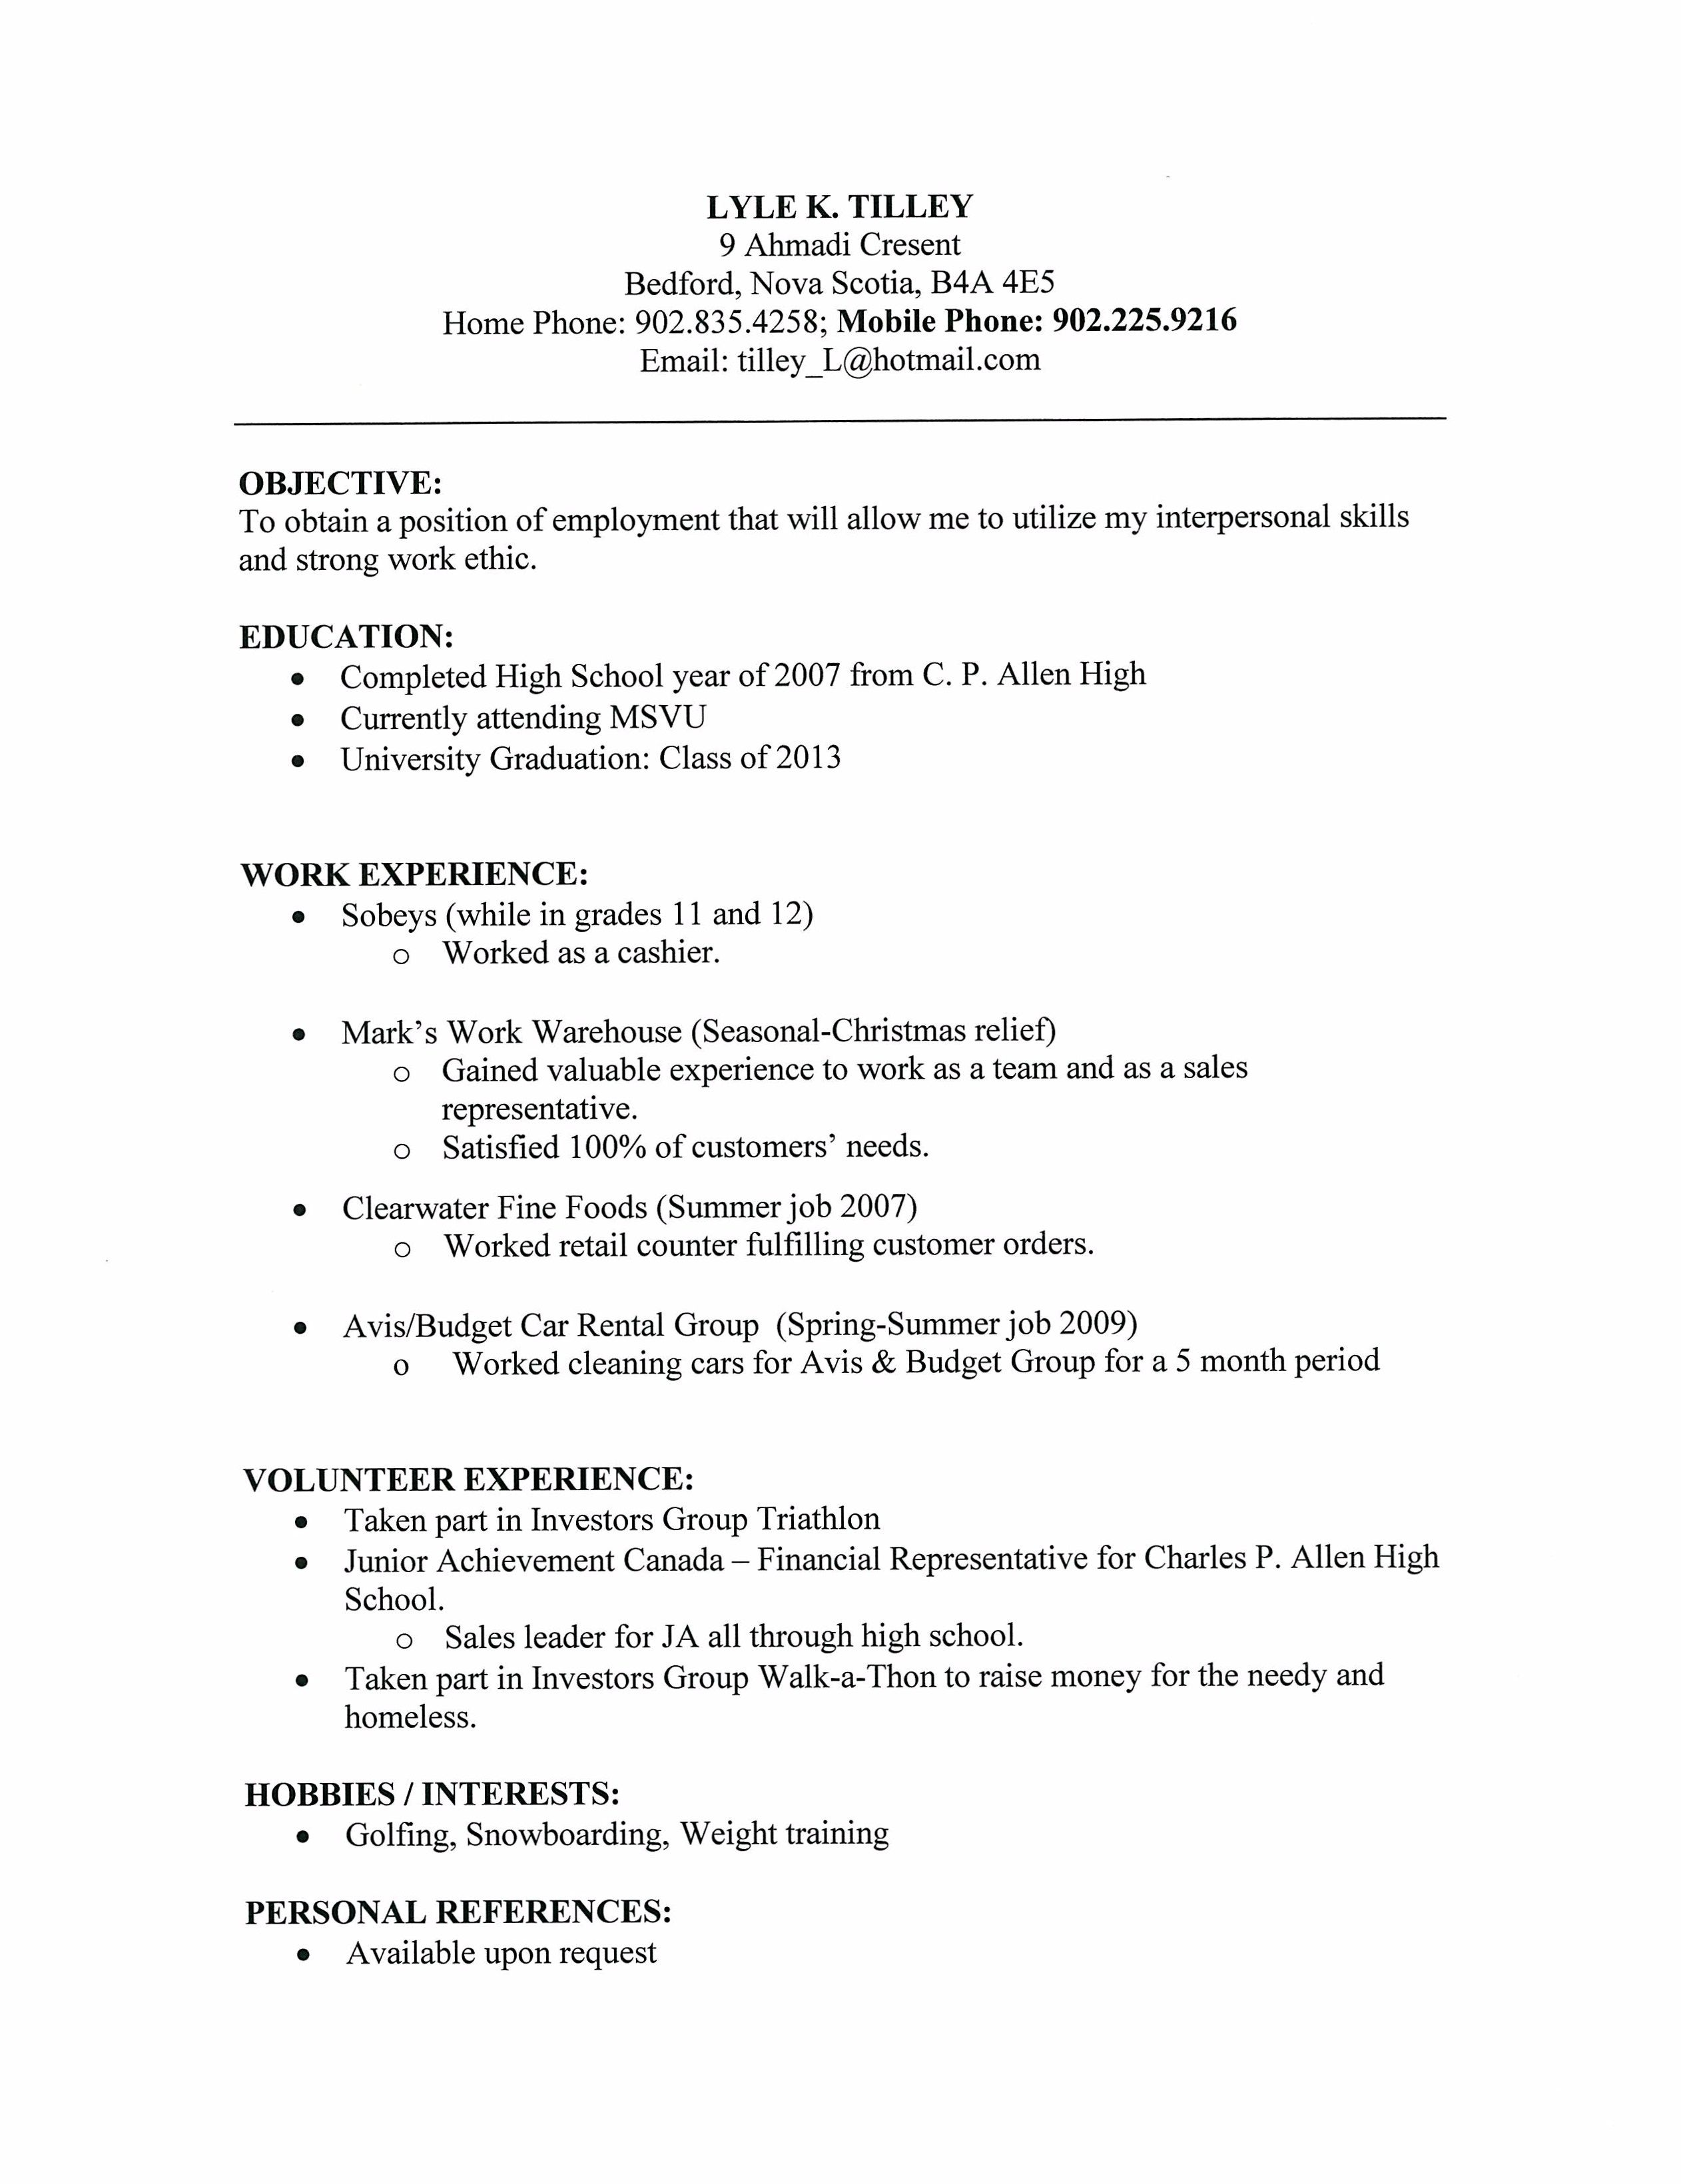 Whats a cover letter for a resume whats a cover letter for a whats a cover letter for a resume whats a cover letter for a resume simple cover letter cover letter template word cover letter format cover letter spiritdancerdesigns Image collections